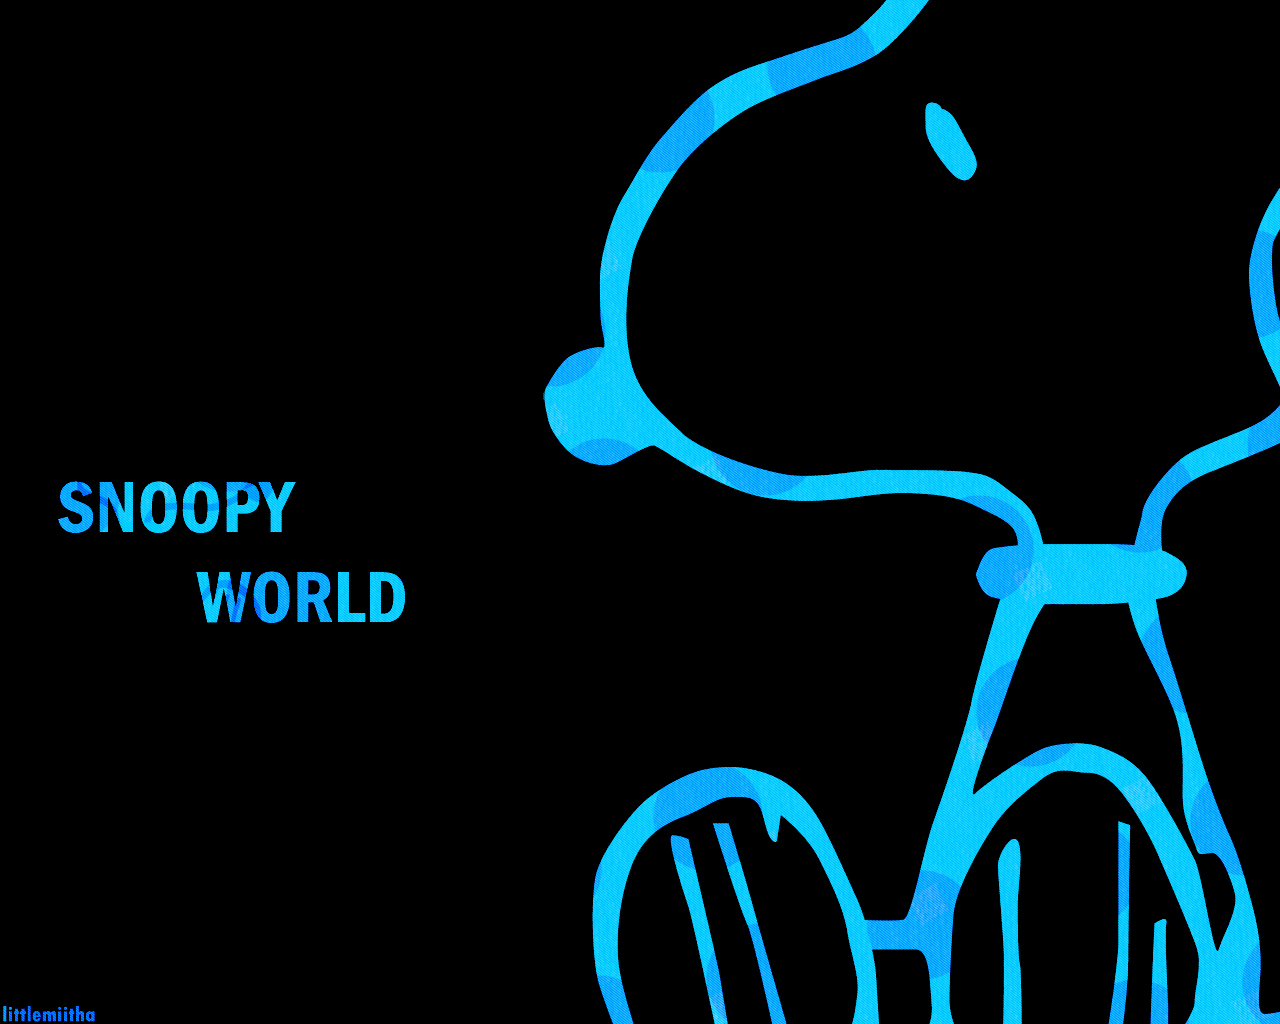 Snoopy Free Wallpaper Black | Collection 12+ Wallpapers